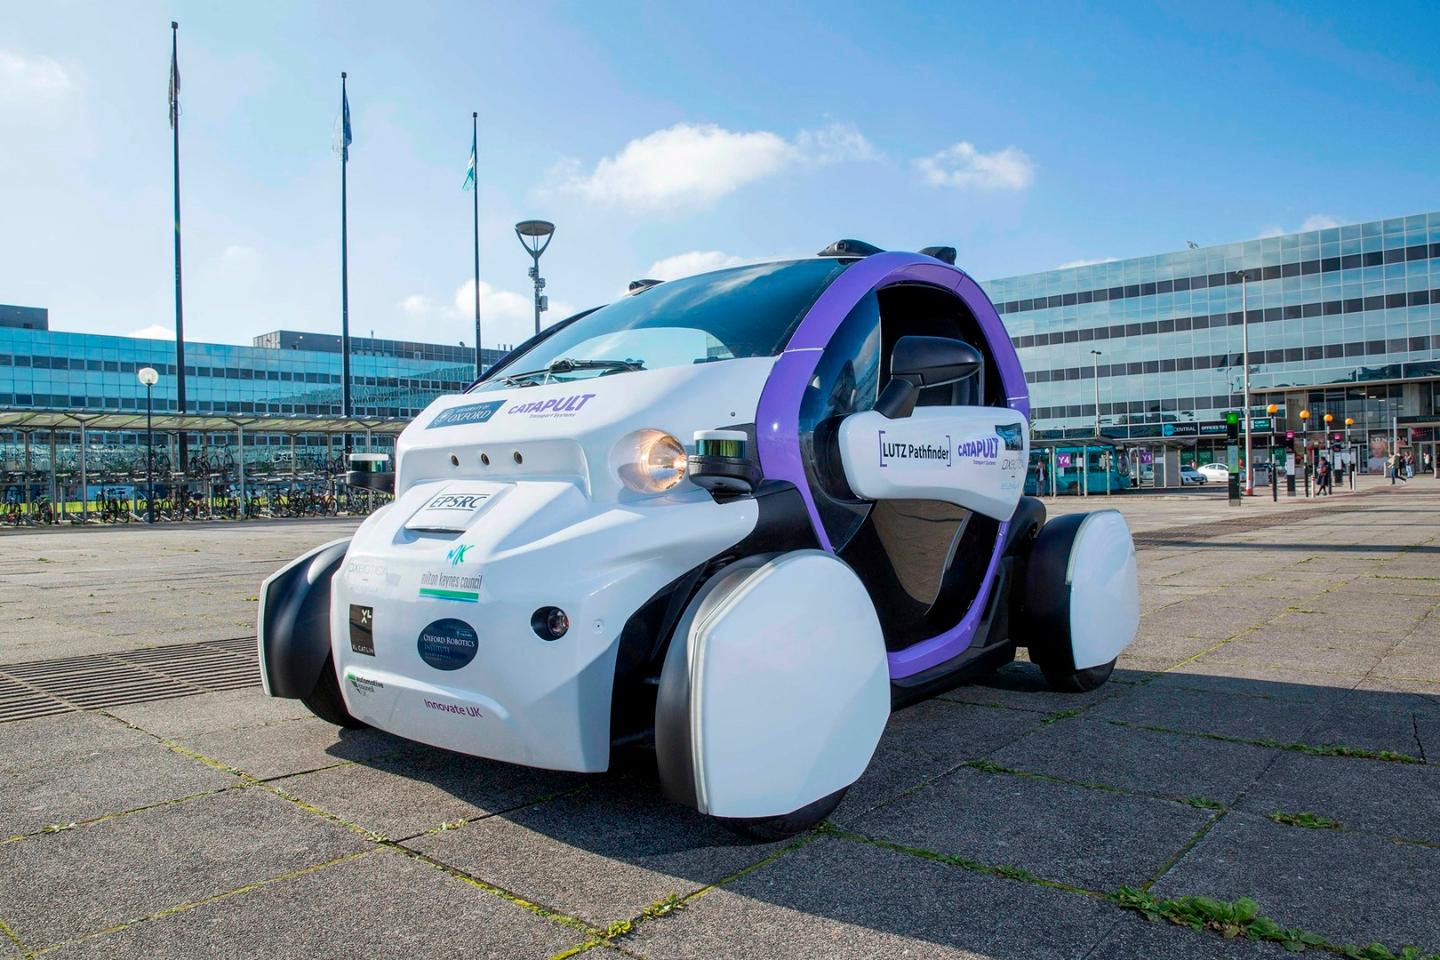 The LUTZ Pathfinder project is said to have been the first UK trial of automated vehicles in public pedestrianized spaces